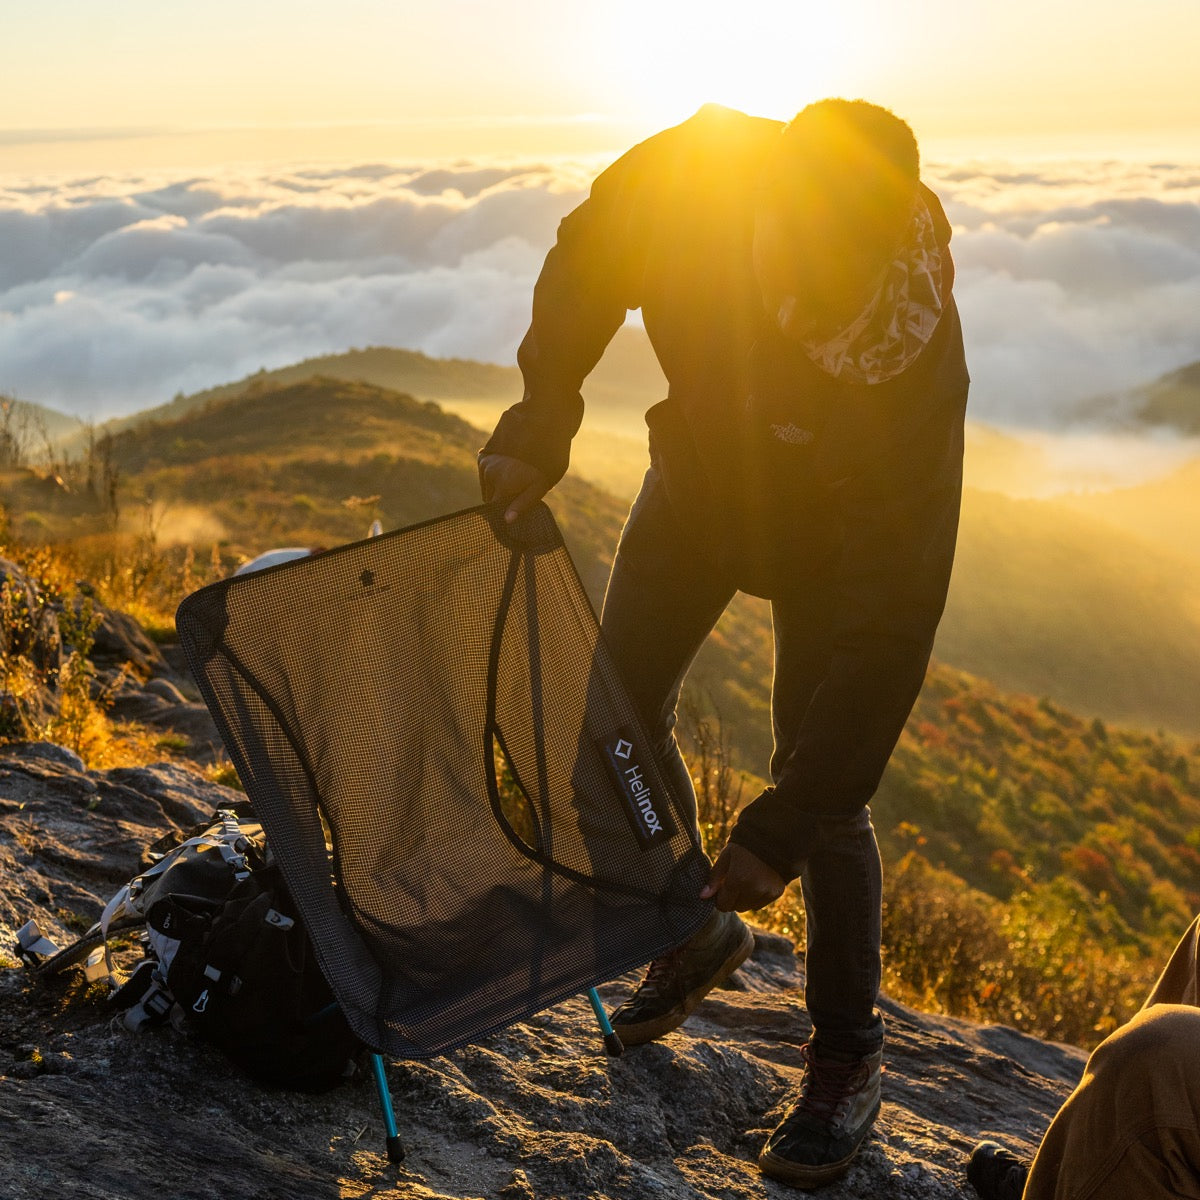 """THE CHAIR ZERO FROM HELINOX REVOLUTIONIZED THE BACKPACKING CHAIR WORLD."""